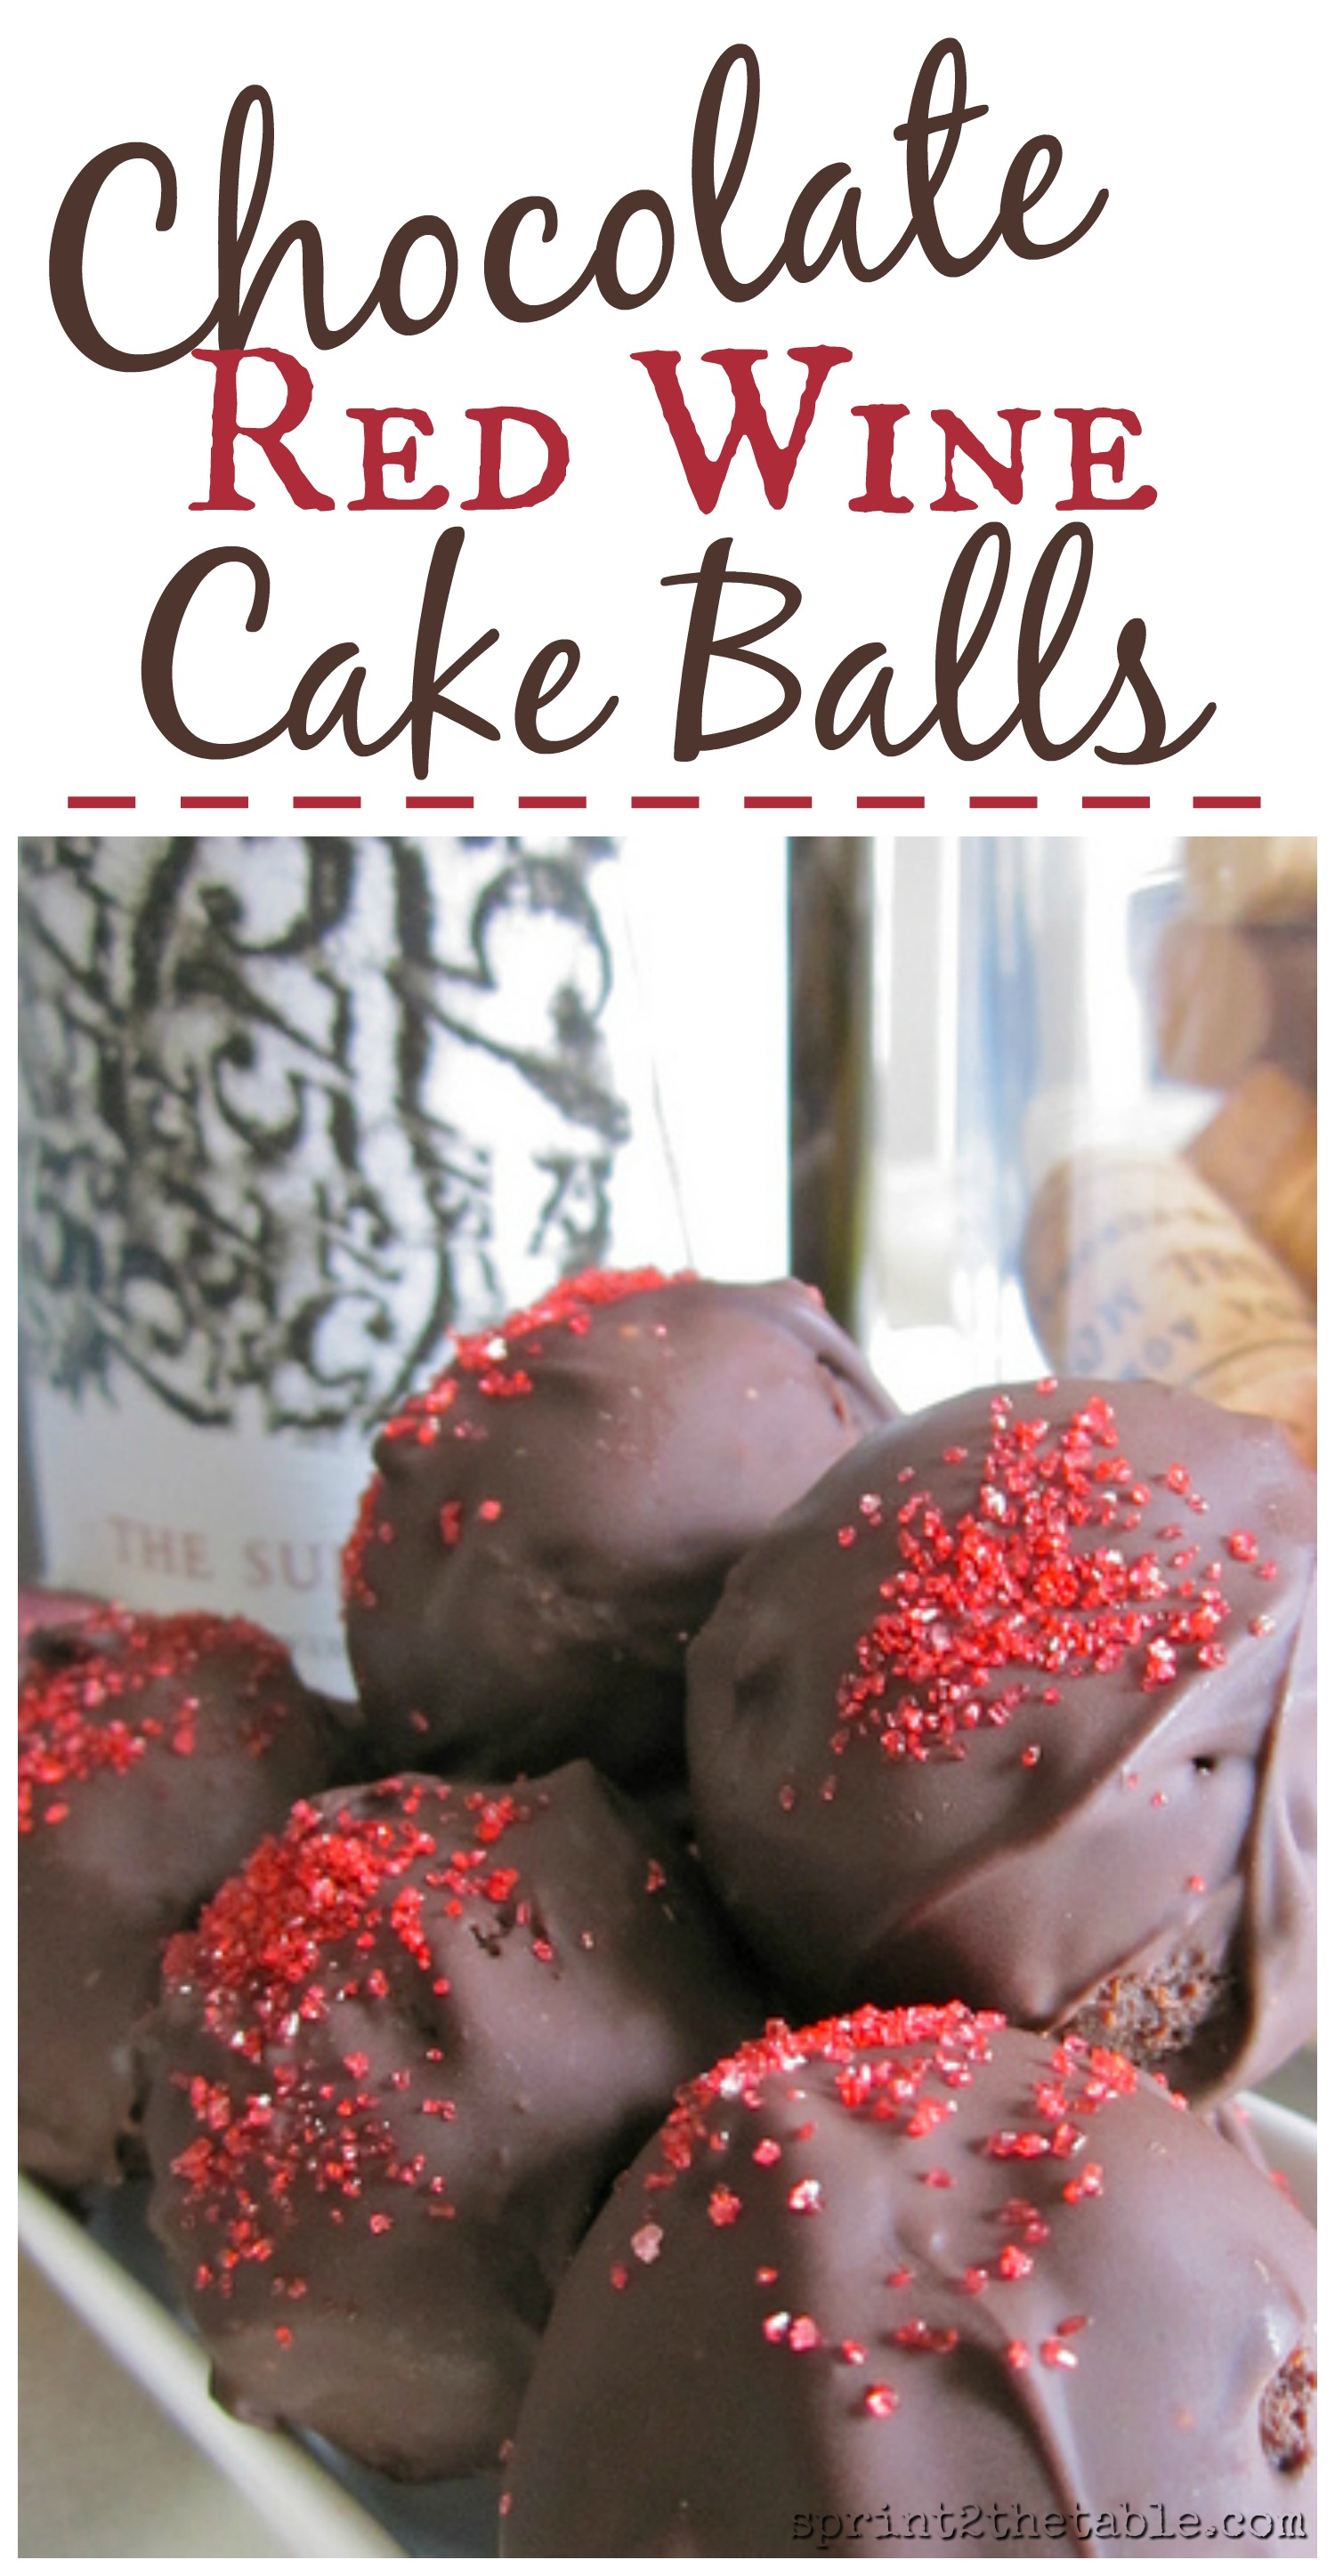 These Chocolate Red Wine Cake Balls are the perfect sweet bite after dinner... with a little bit more wine, of course.